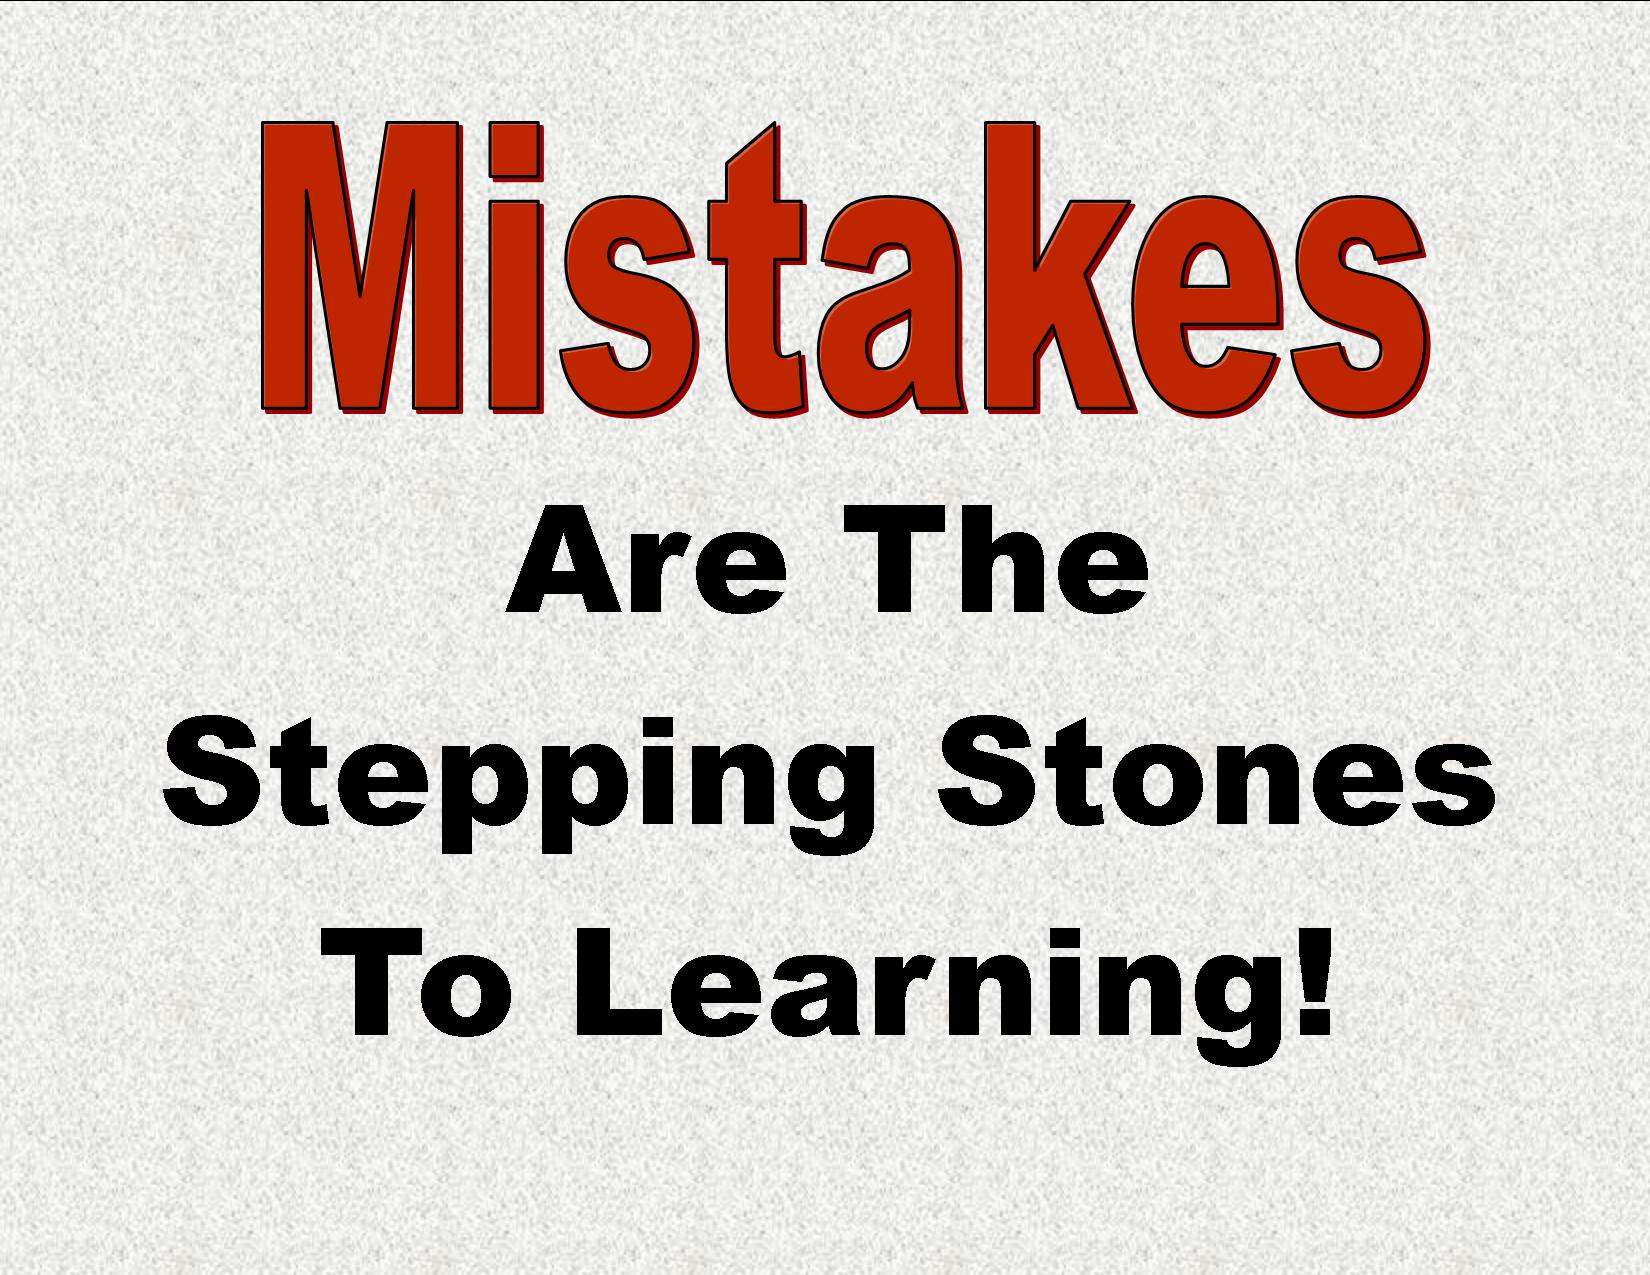 learn from mistakes meme